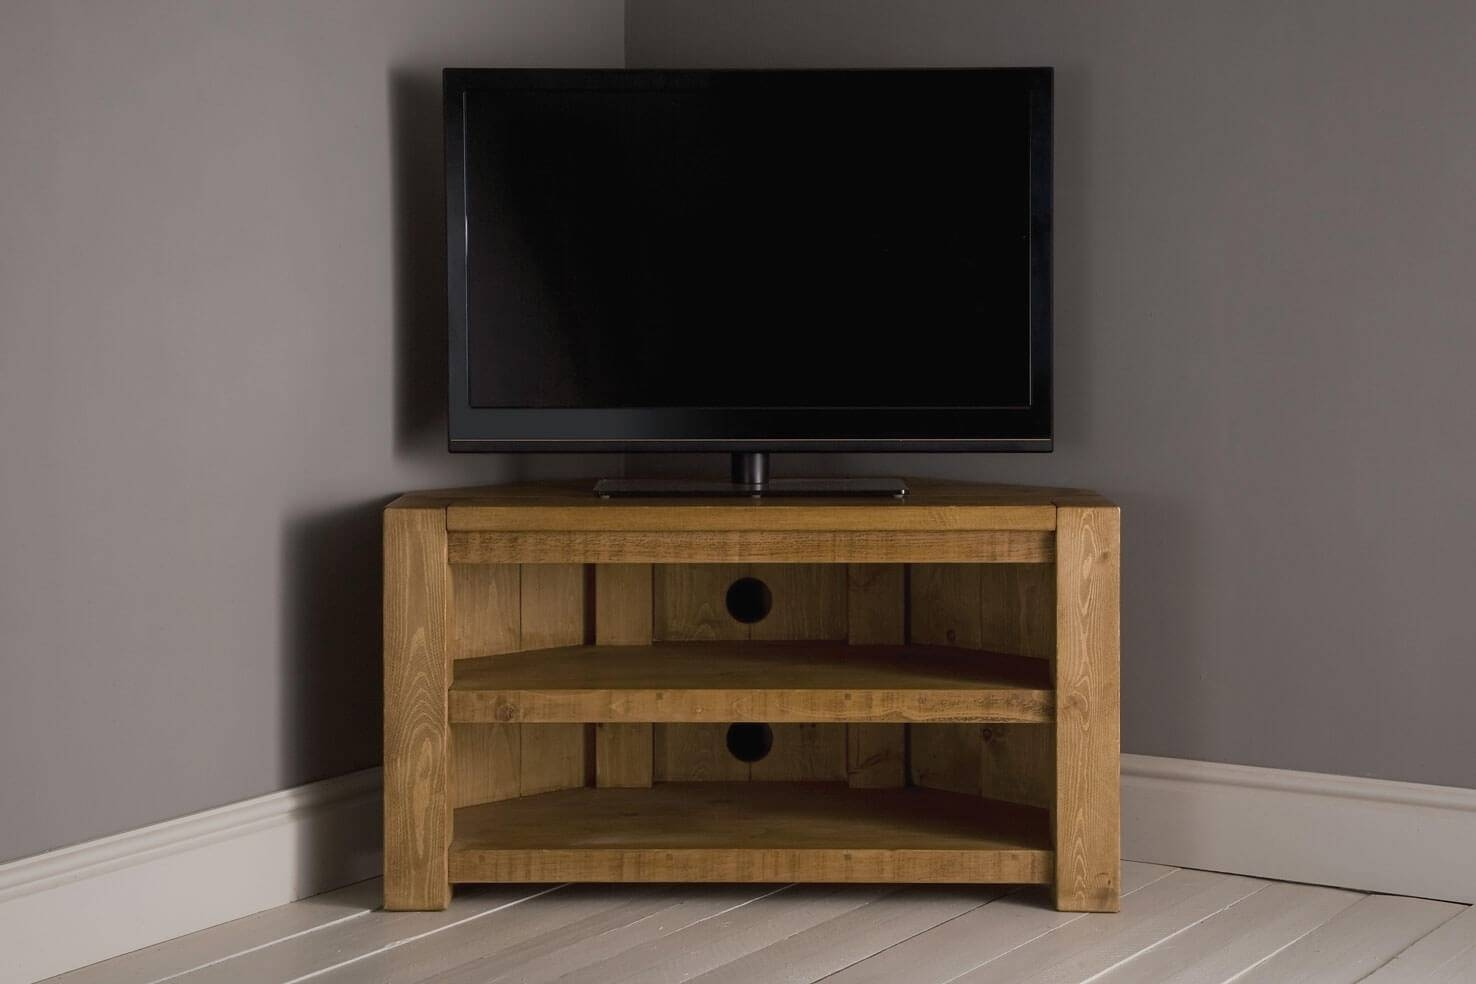 Plank Beam Corner Tv Unit With Shelfindigo Furniture with regard to Corner Tv Units (Image 7 of 15)